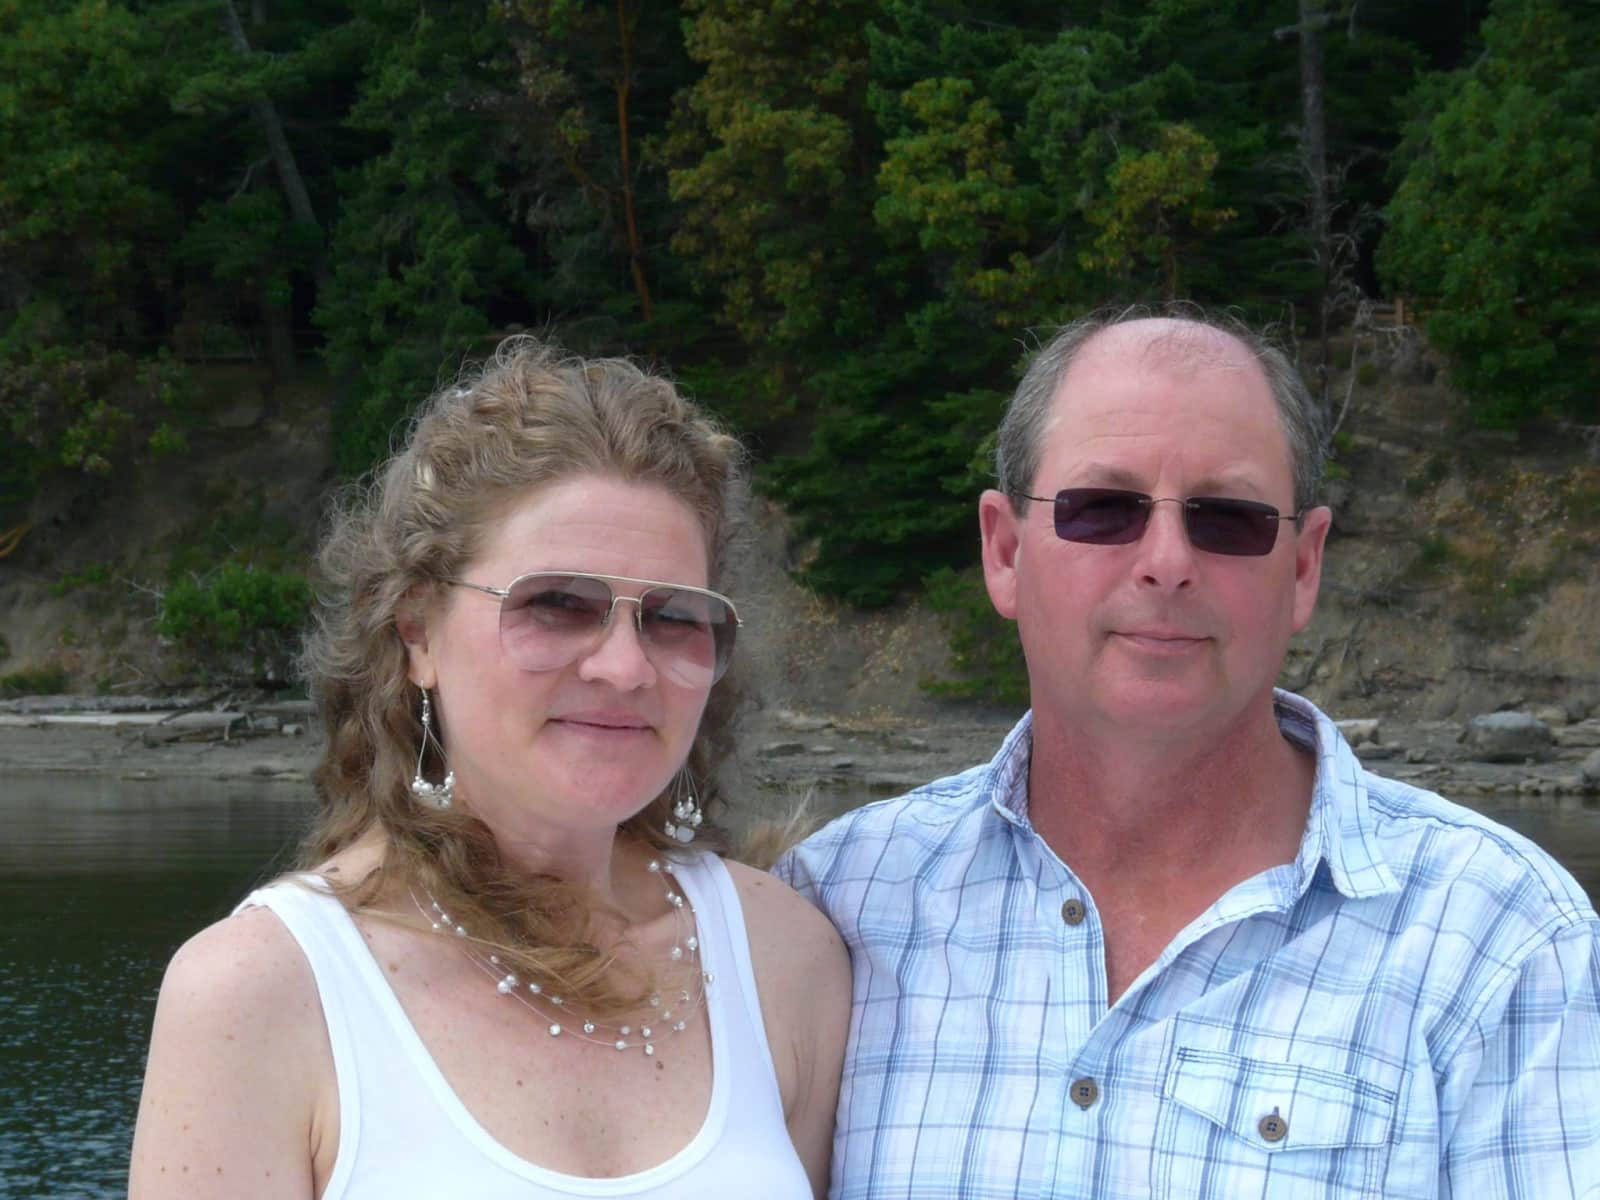 Susan & John from Sechelt, British Columbia, Canada